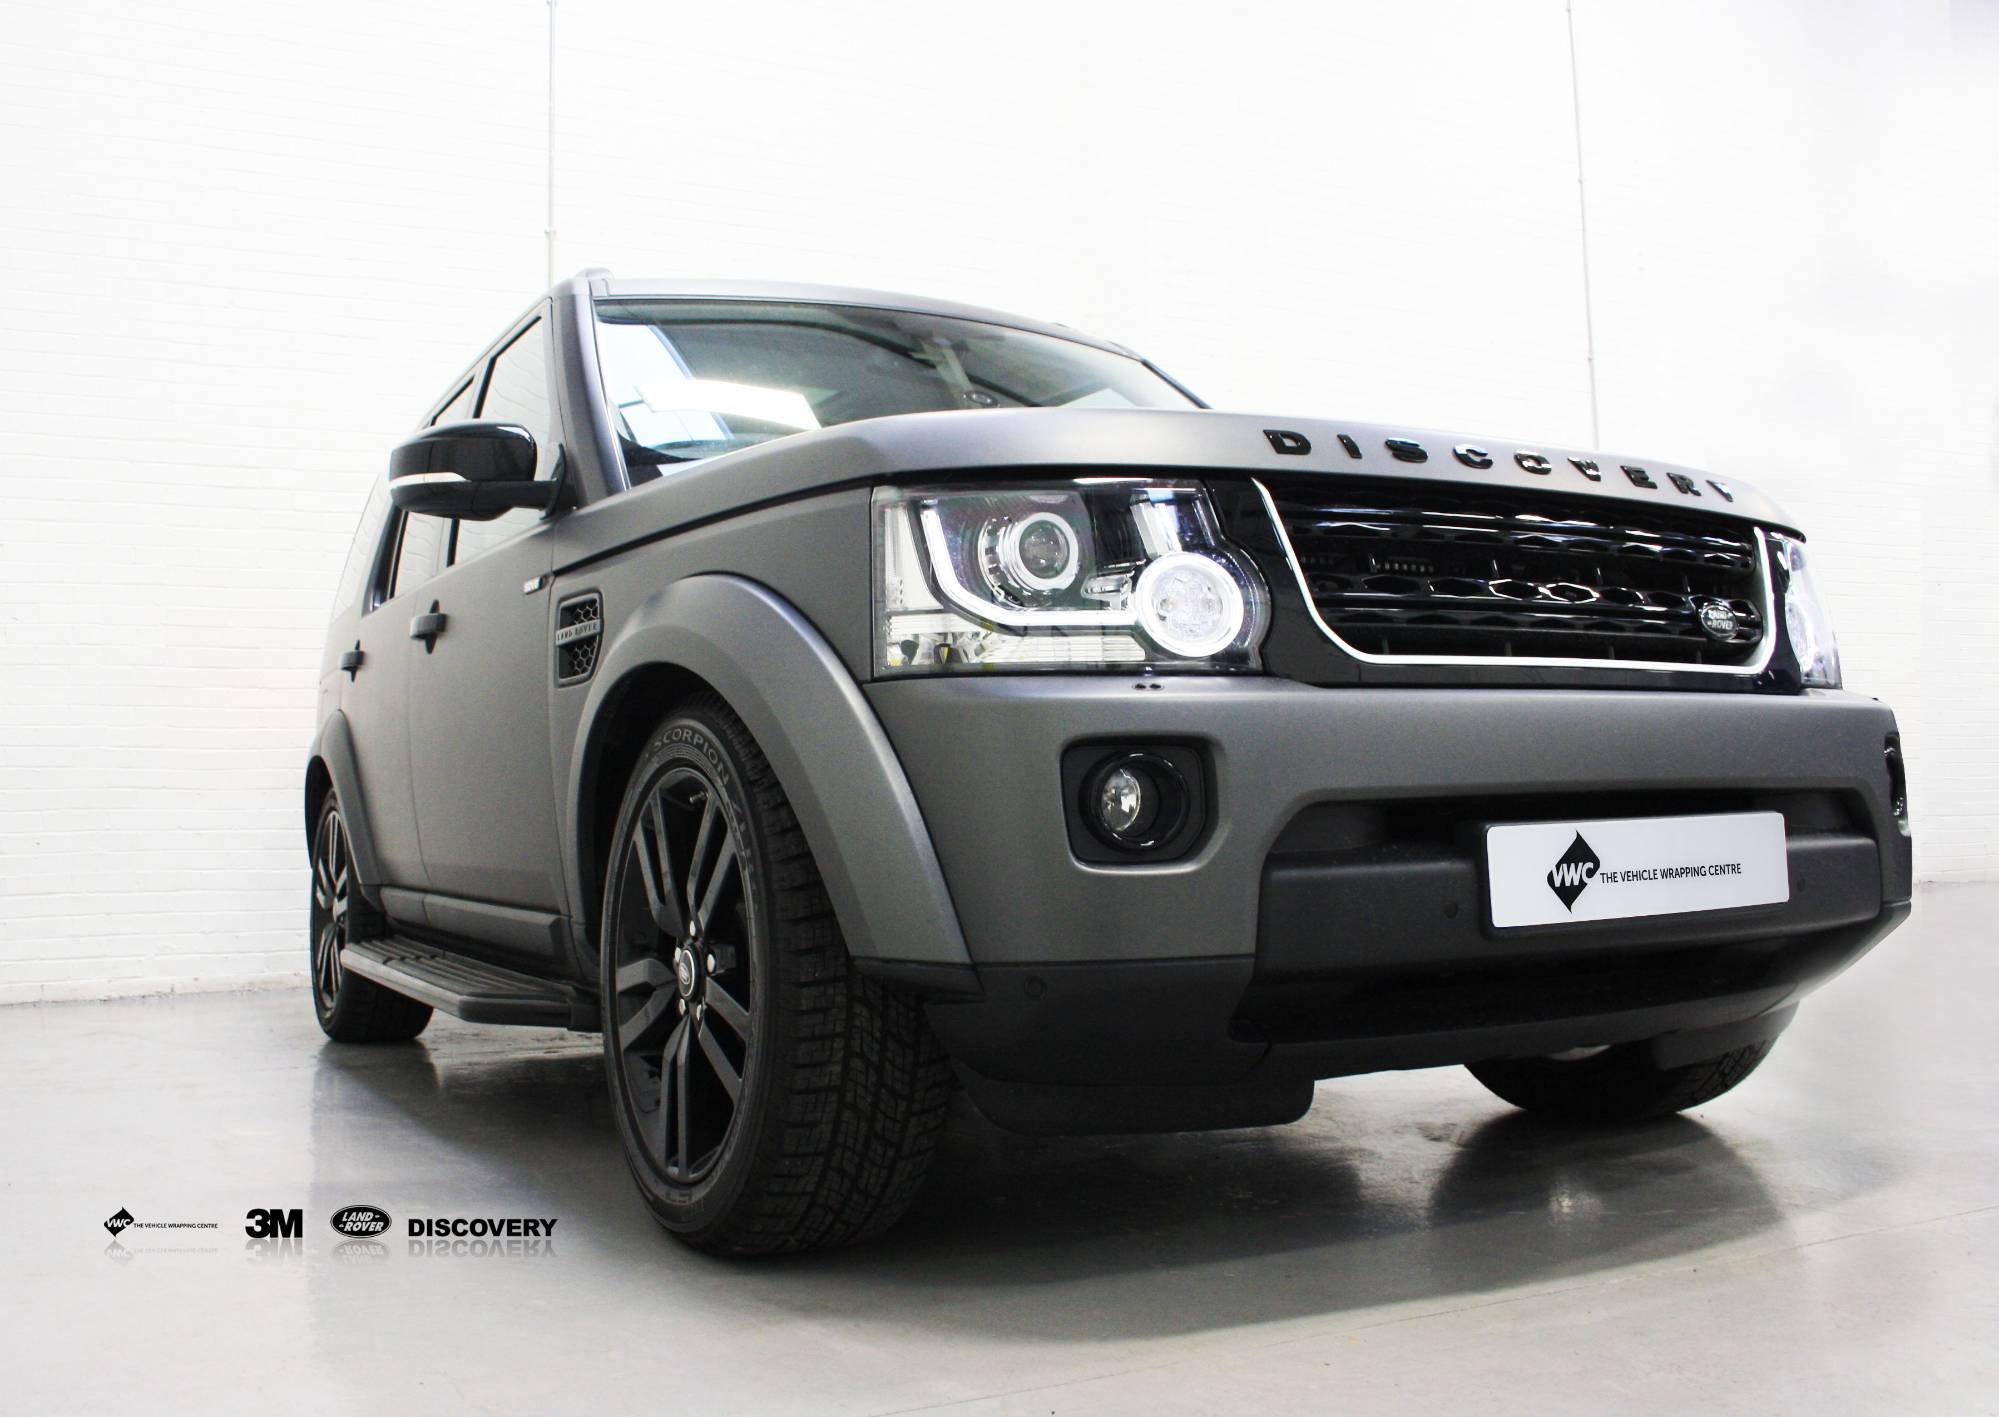 land rover discovery 3m matte metallic grey personal. Black Bedroom Furniture Sets. Home Design Ideas